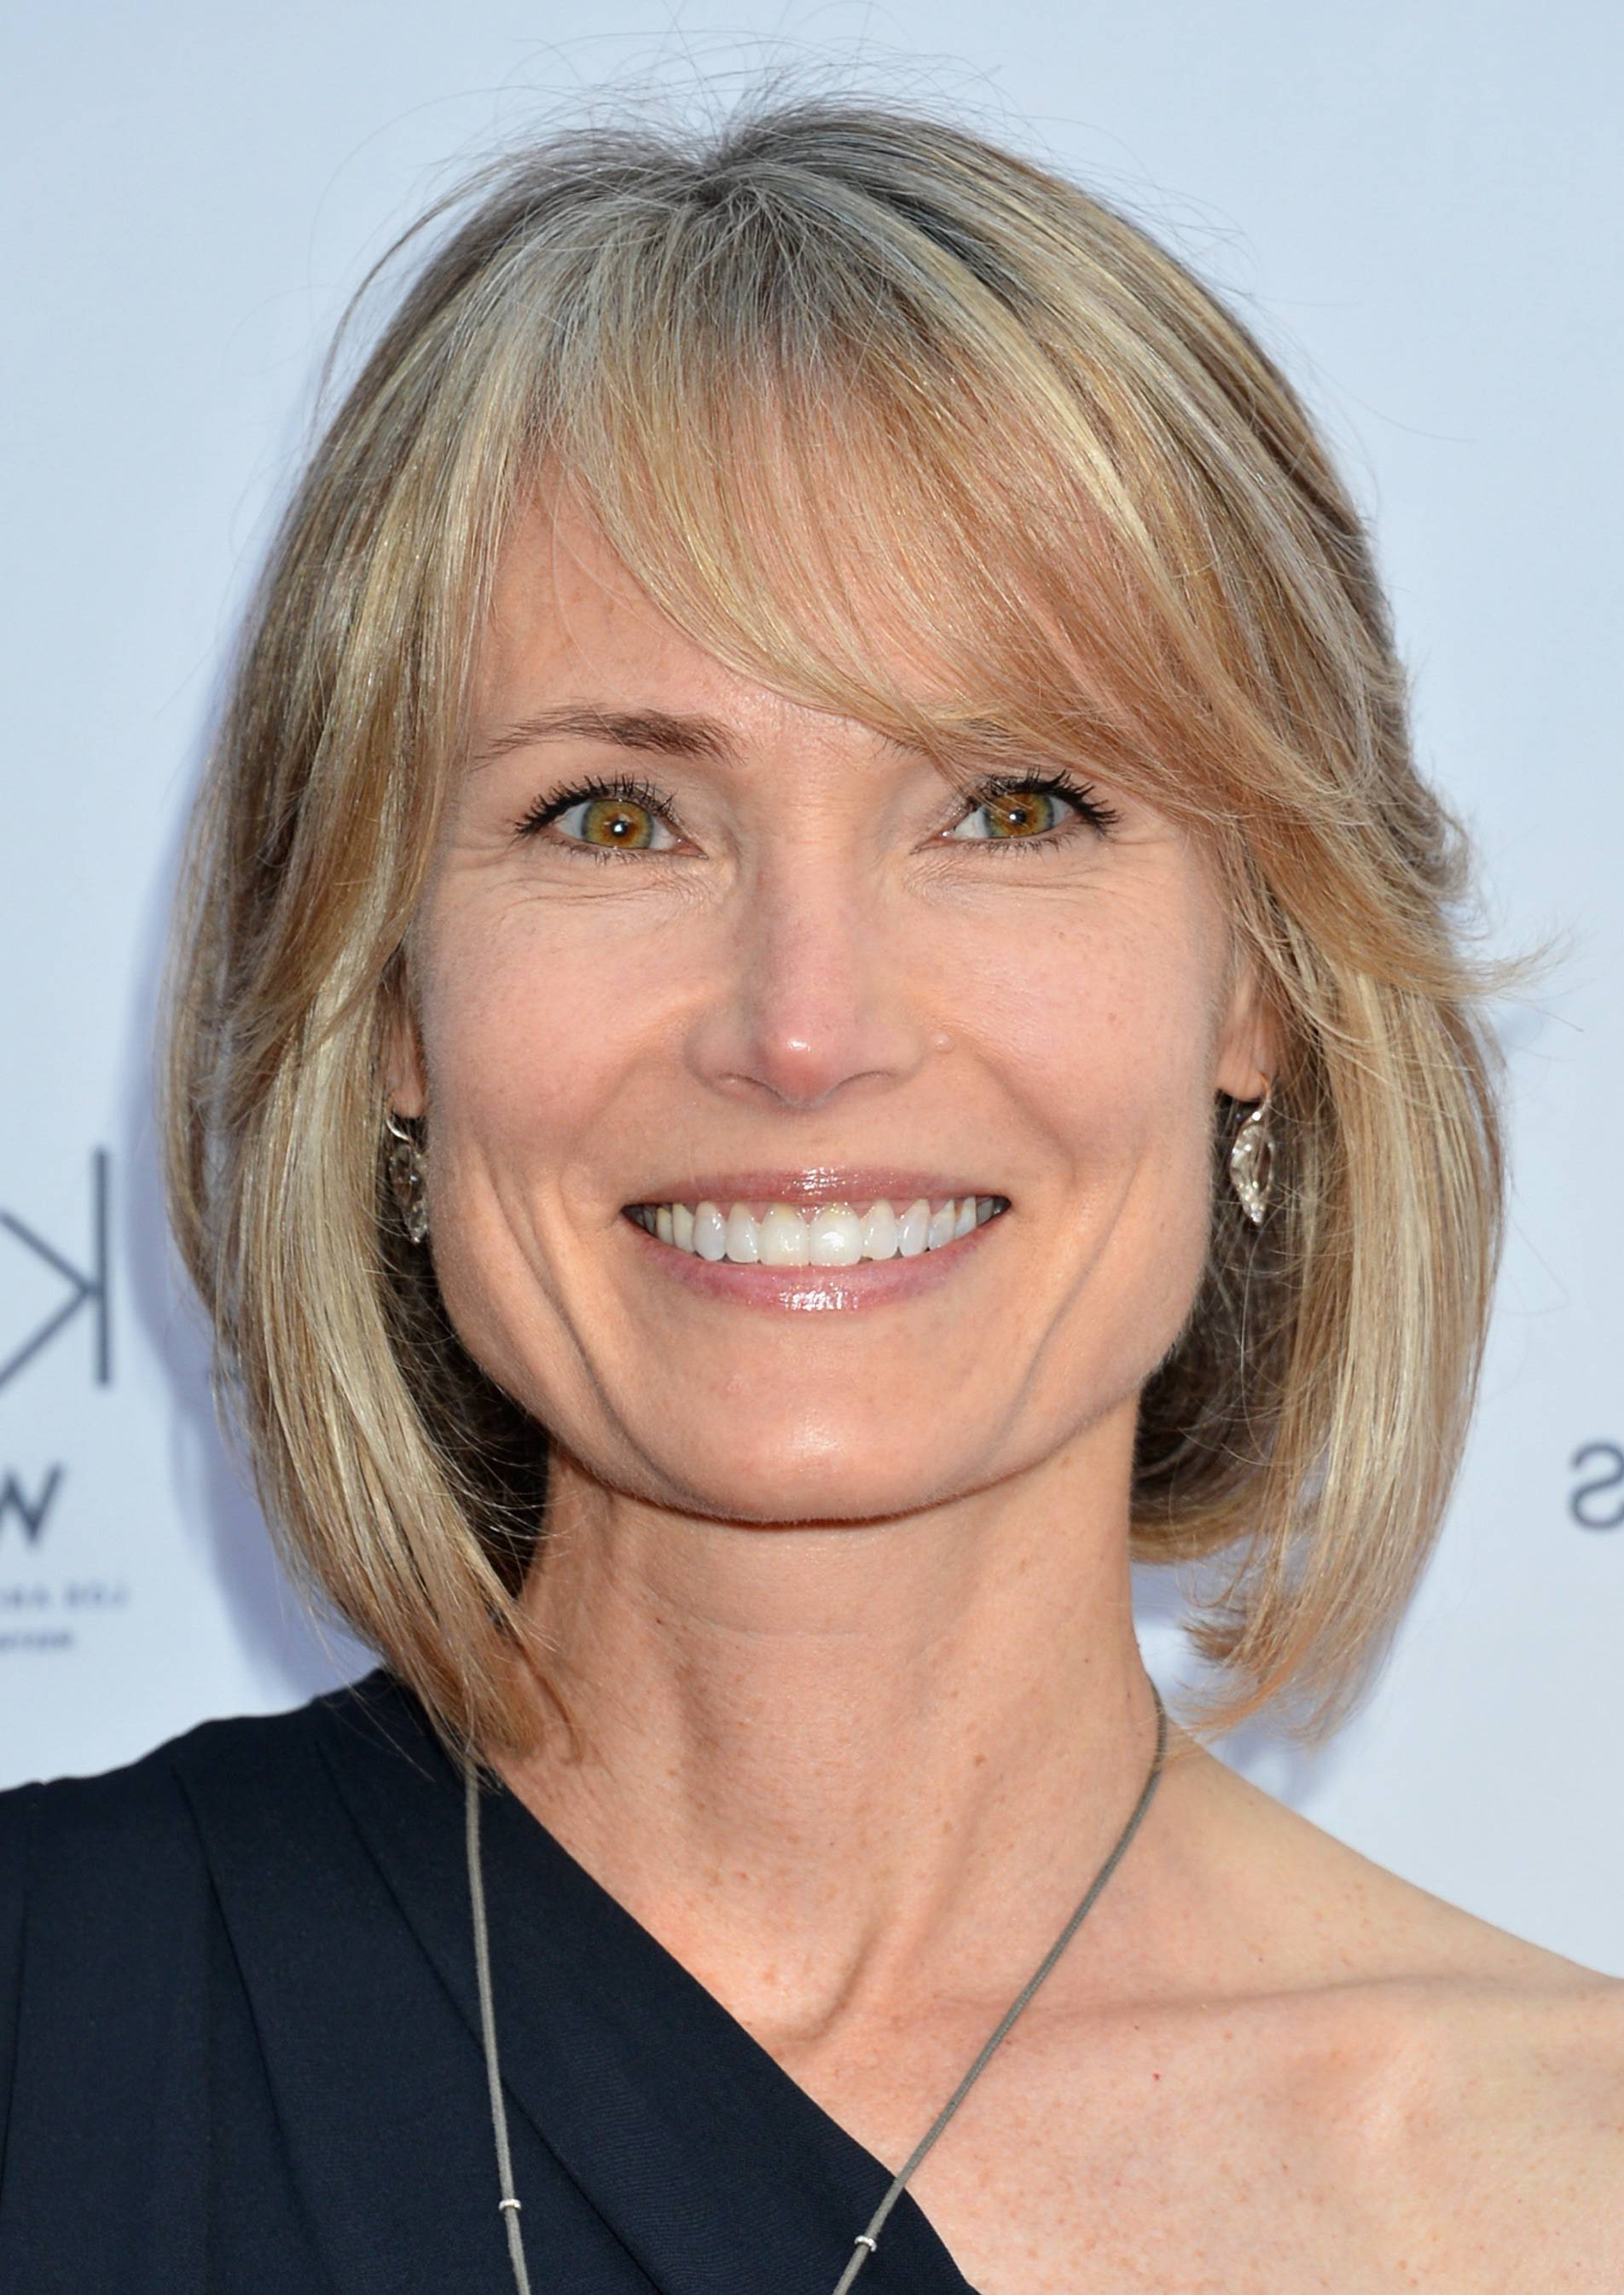 The Best Hair Cuts For Women Over 50 – Women Hairstyles Within Short Women Hairstyles Over  (View 21 of 25)